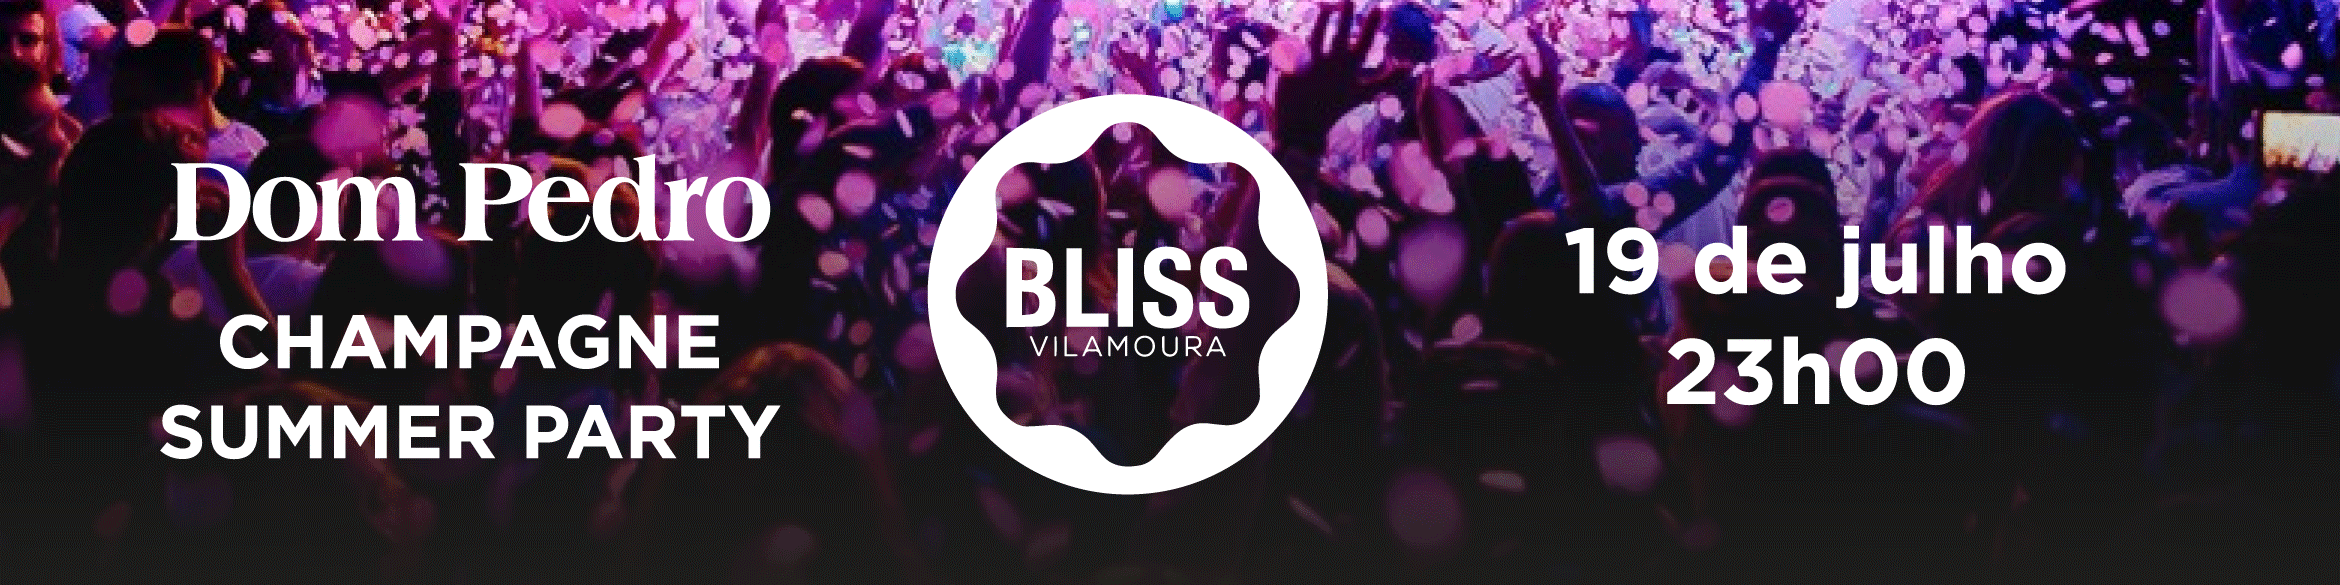 Bliss_party_DOA_convite_website_02.png